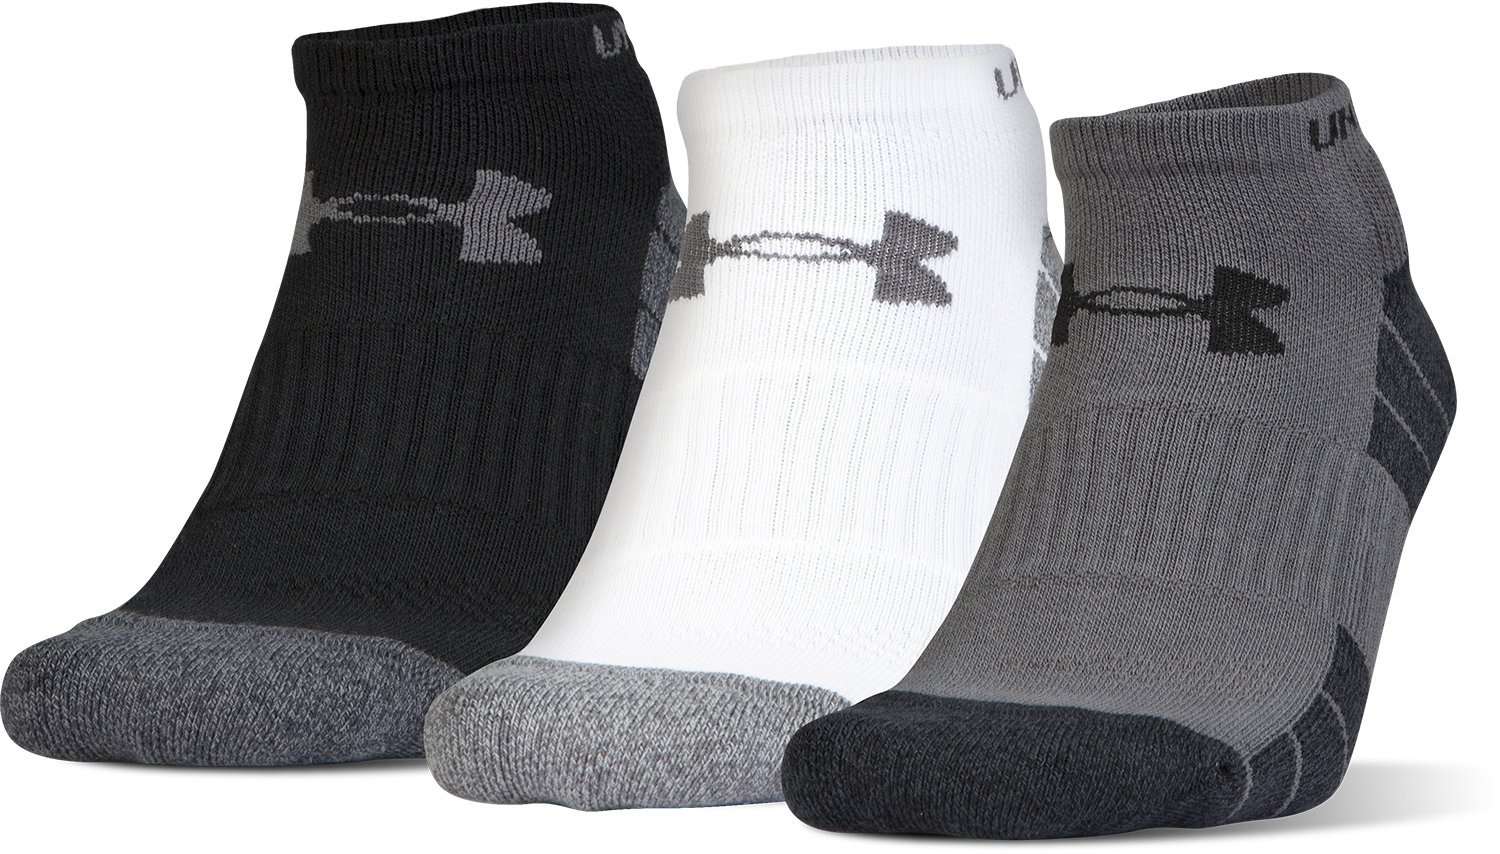 Under Armour Men's Elevated Performance No Show (3 Pack), Graphite Marl/Asst, Medium by Under Armour